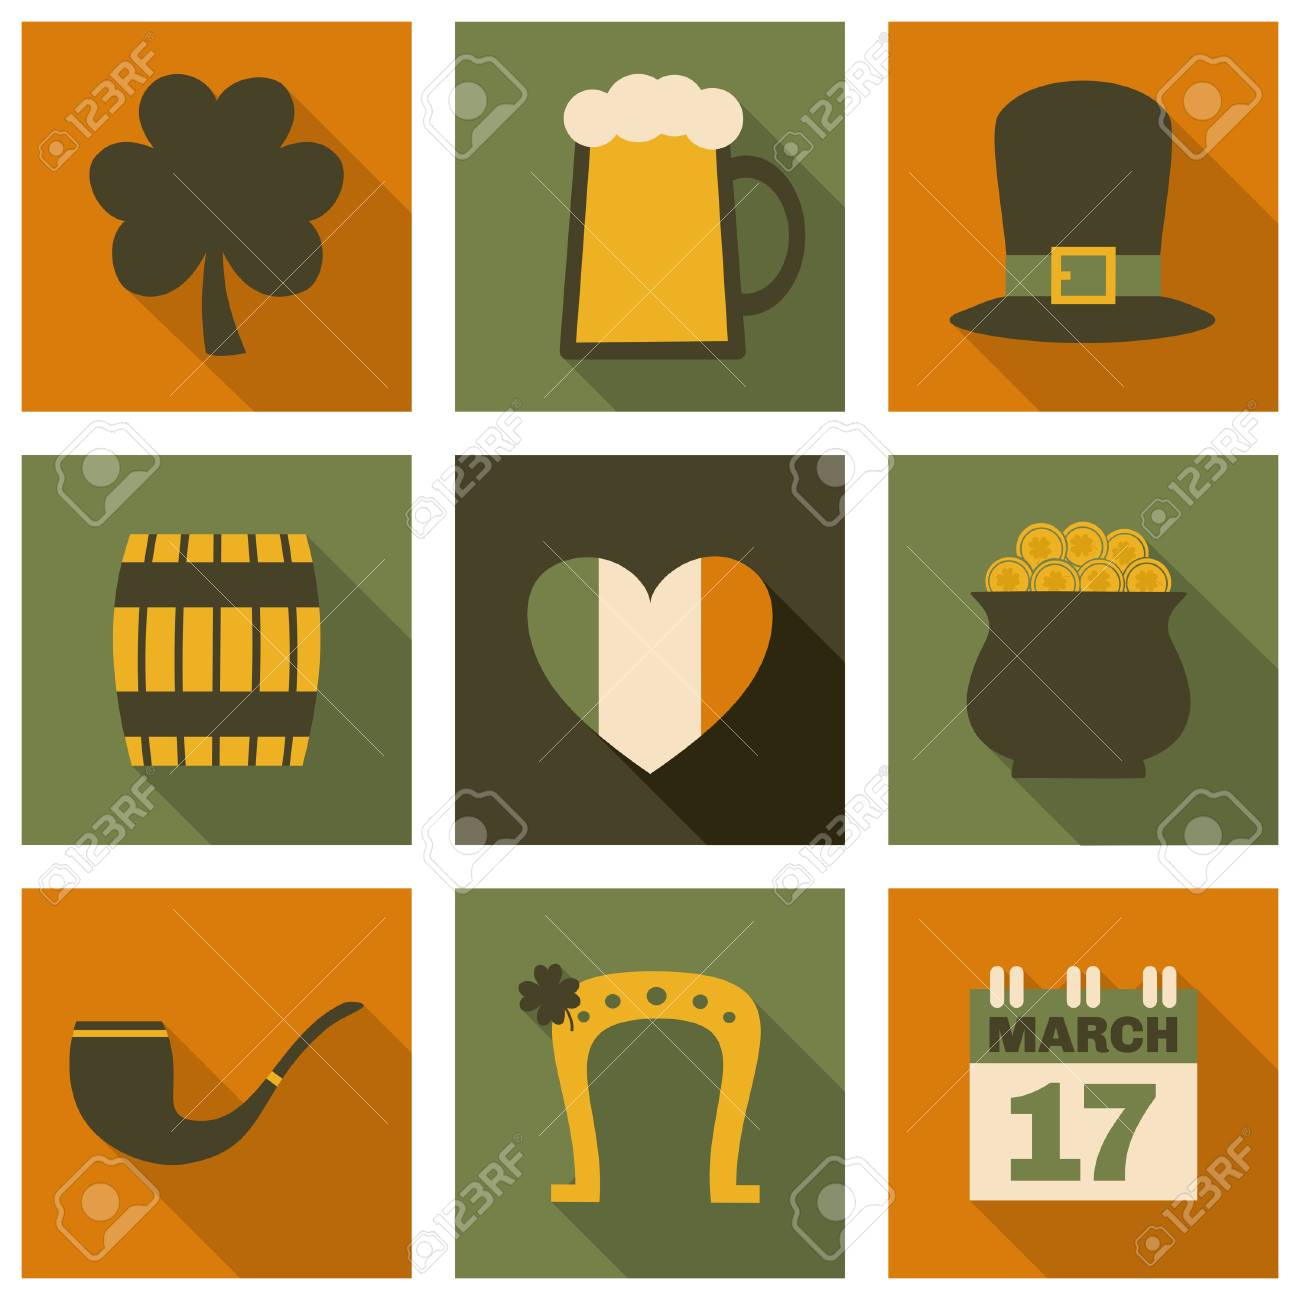 A set of flat design long shadow icons for St. Patrick's Day, isolated on white. Stock Vector - 25867441